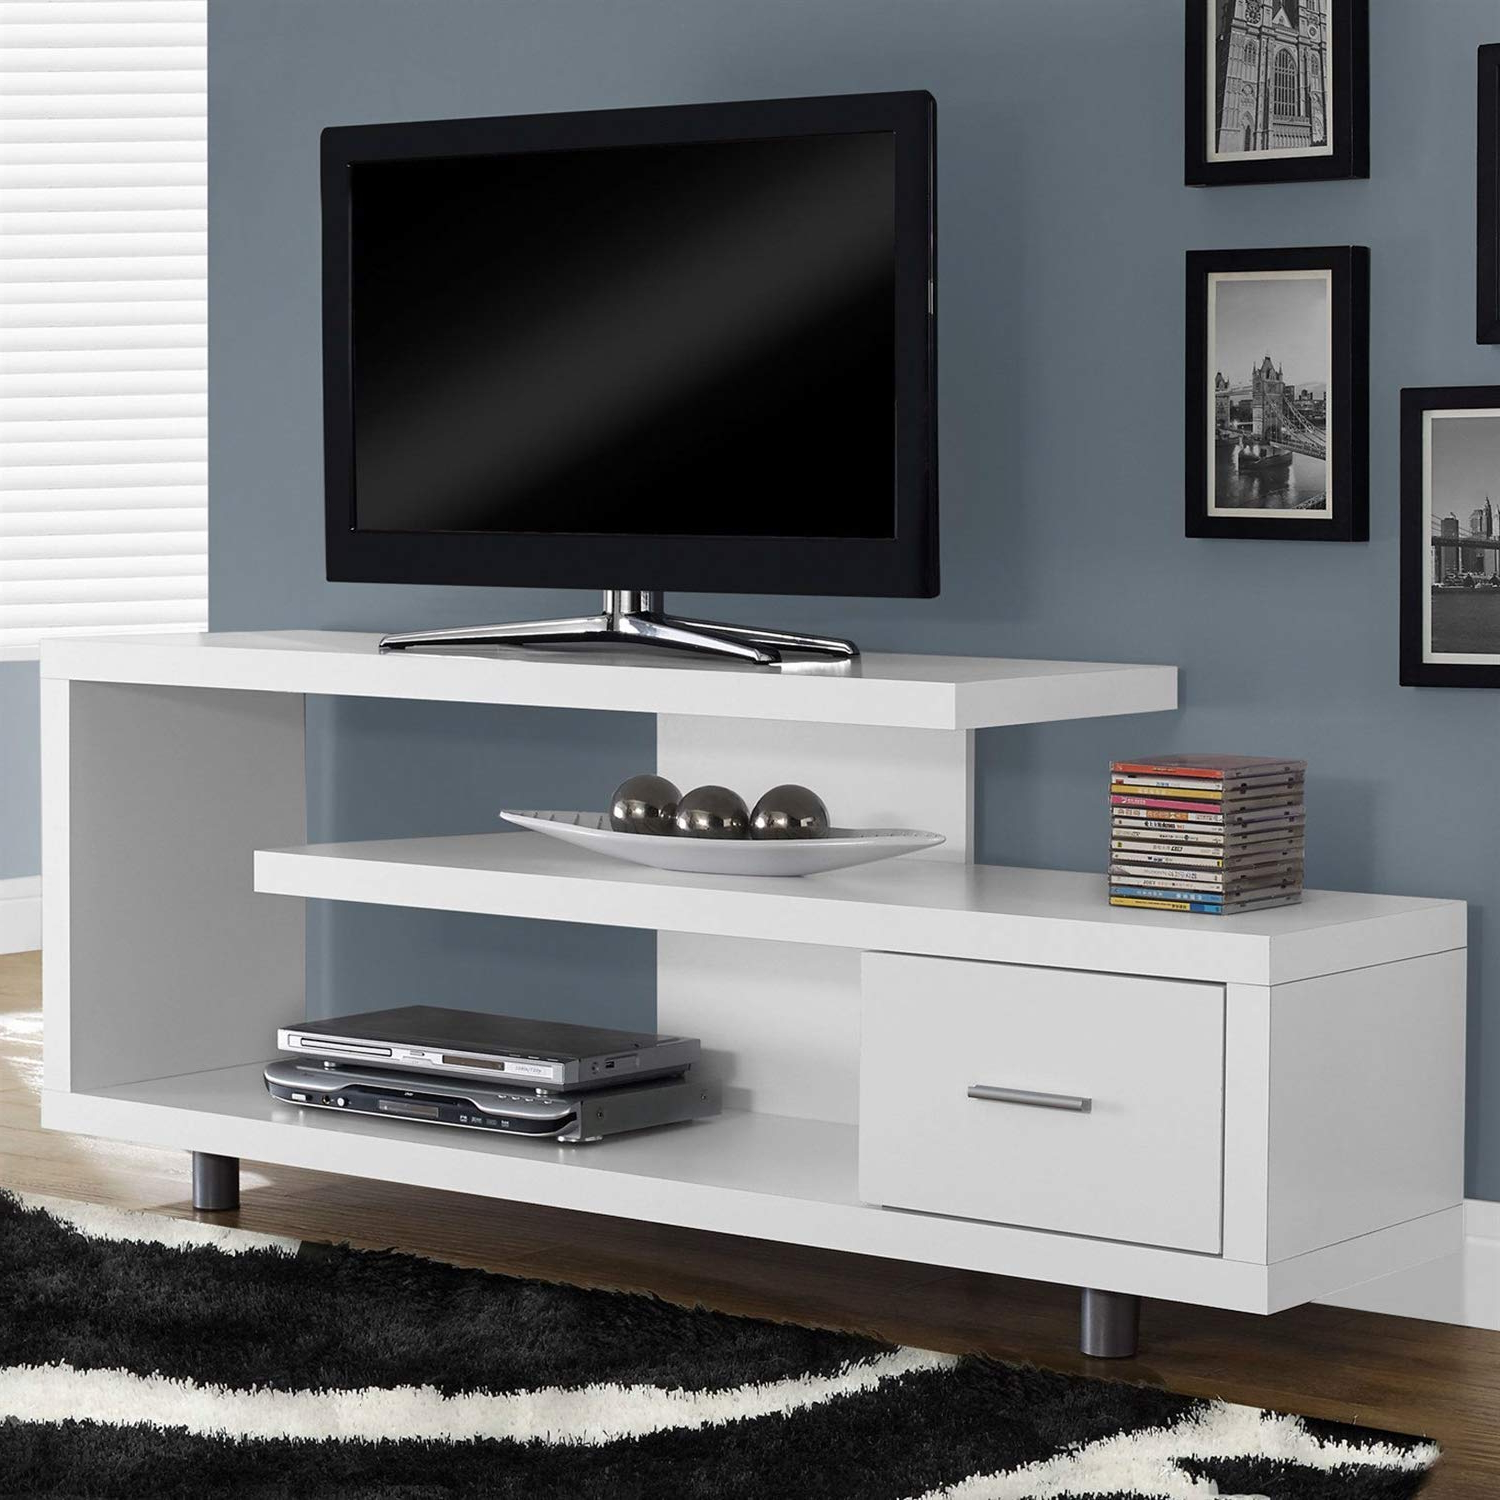 Most Recently Released Cheap Tv Stand 55 Inch Flat Screen, Find Tv Stand 55 Inch Flat Regarding Wooden Tv Stands For 55 Inch Flat Screen (View 20 of 20)